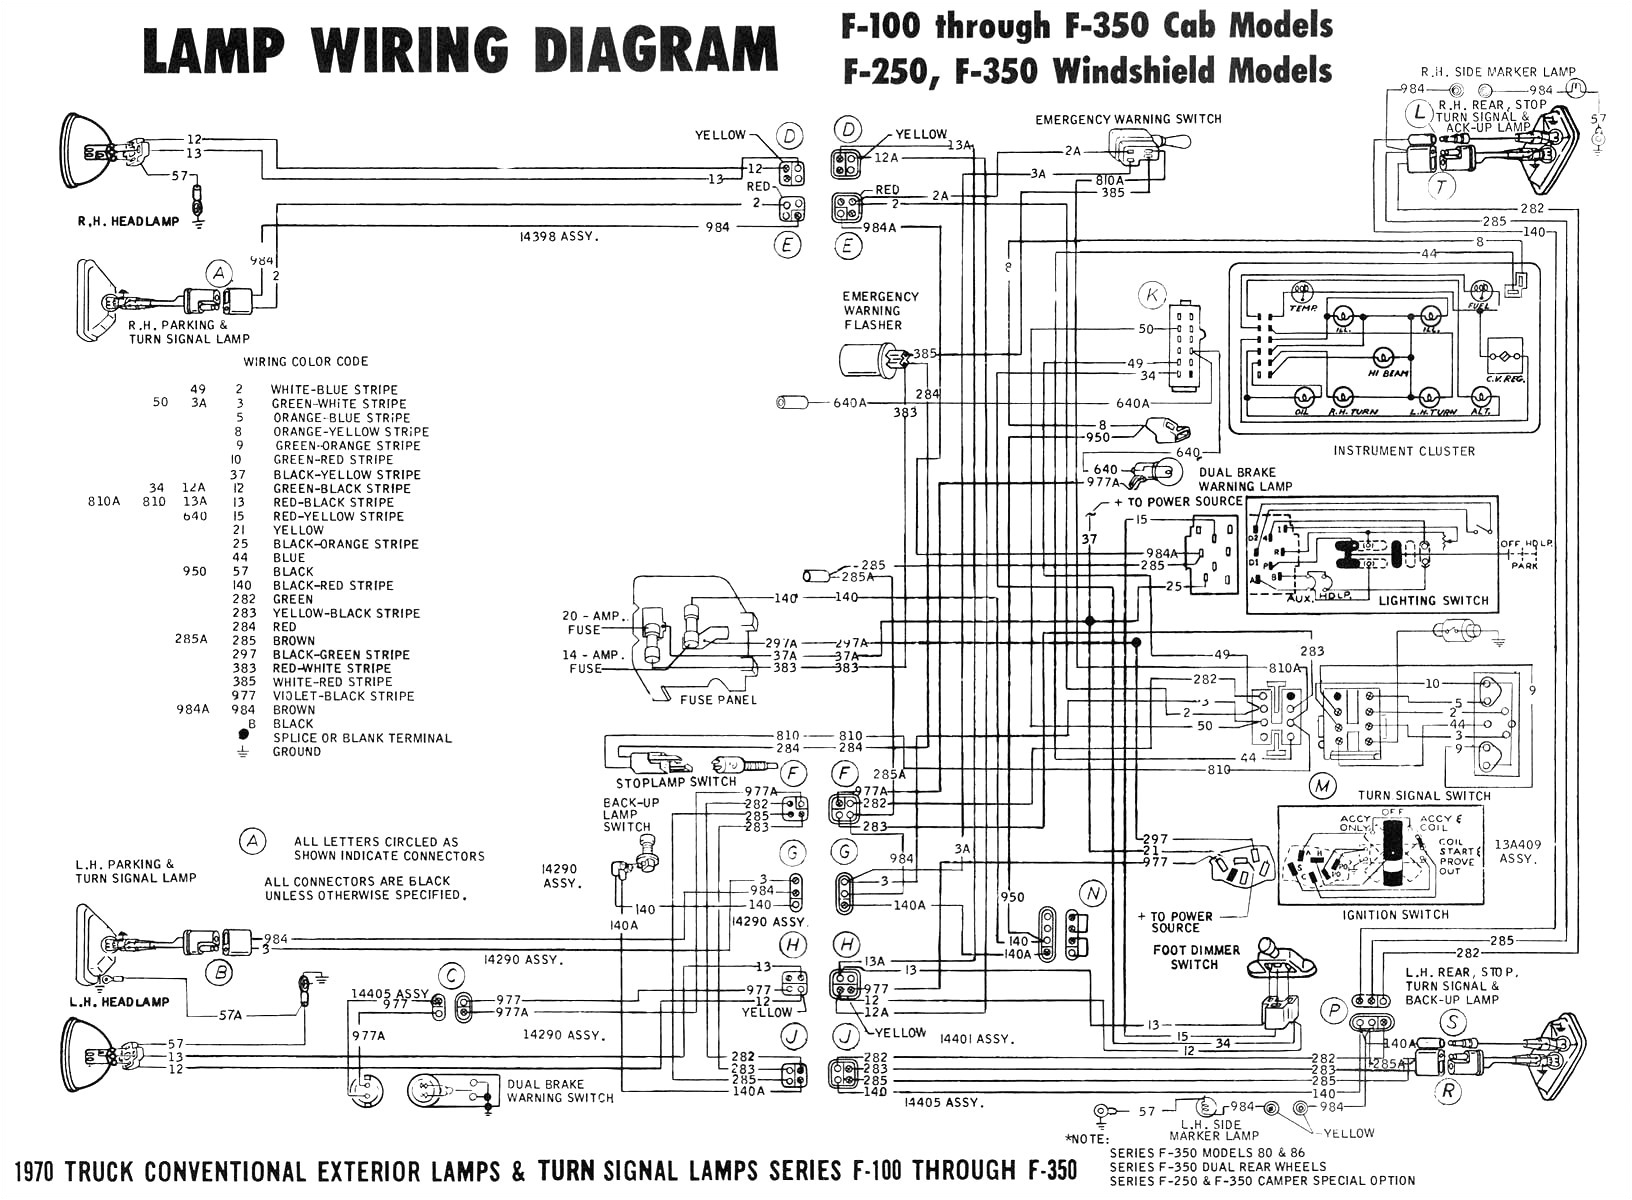 1990 f250 wiring diagram wiring diagram article 1990 ford f350 wiring diagram 1990 ford f 250